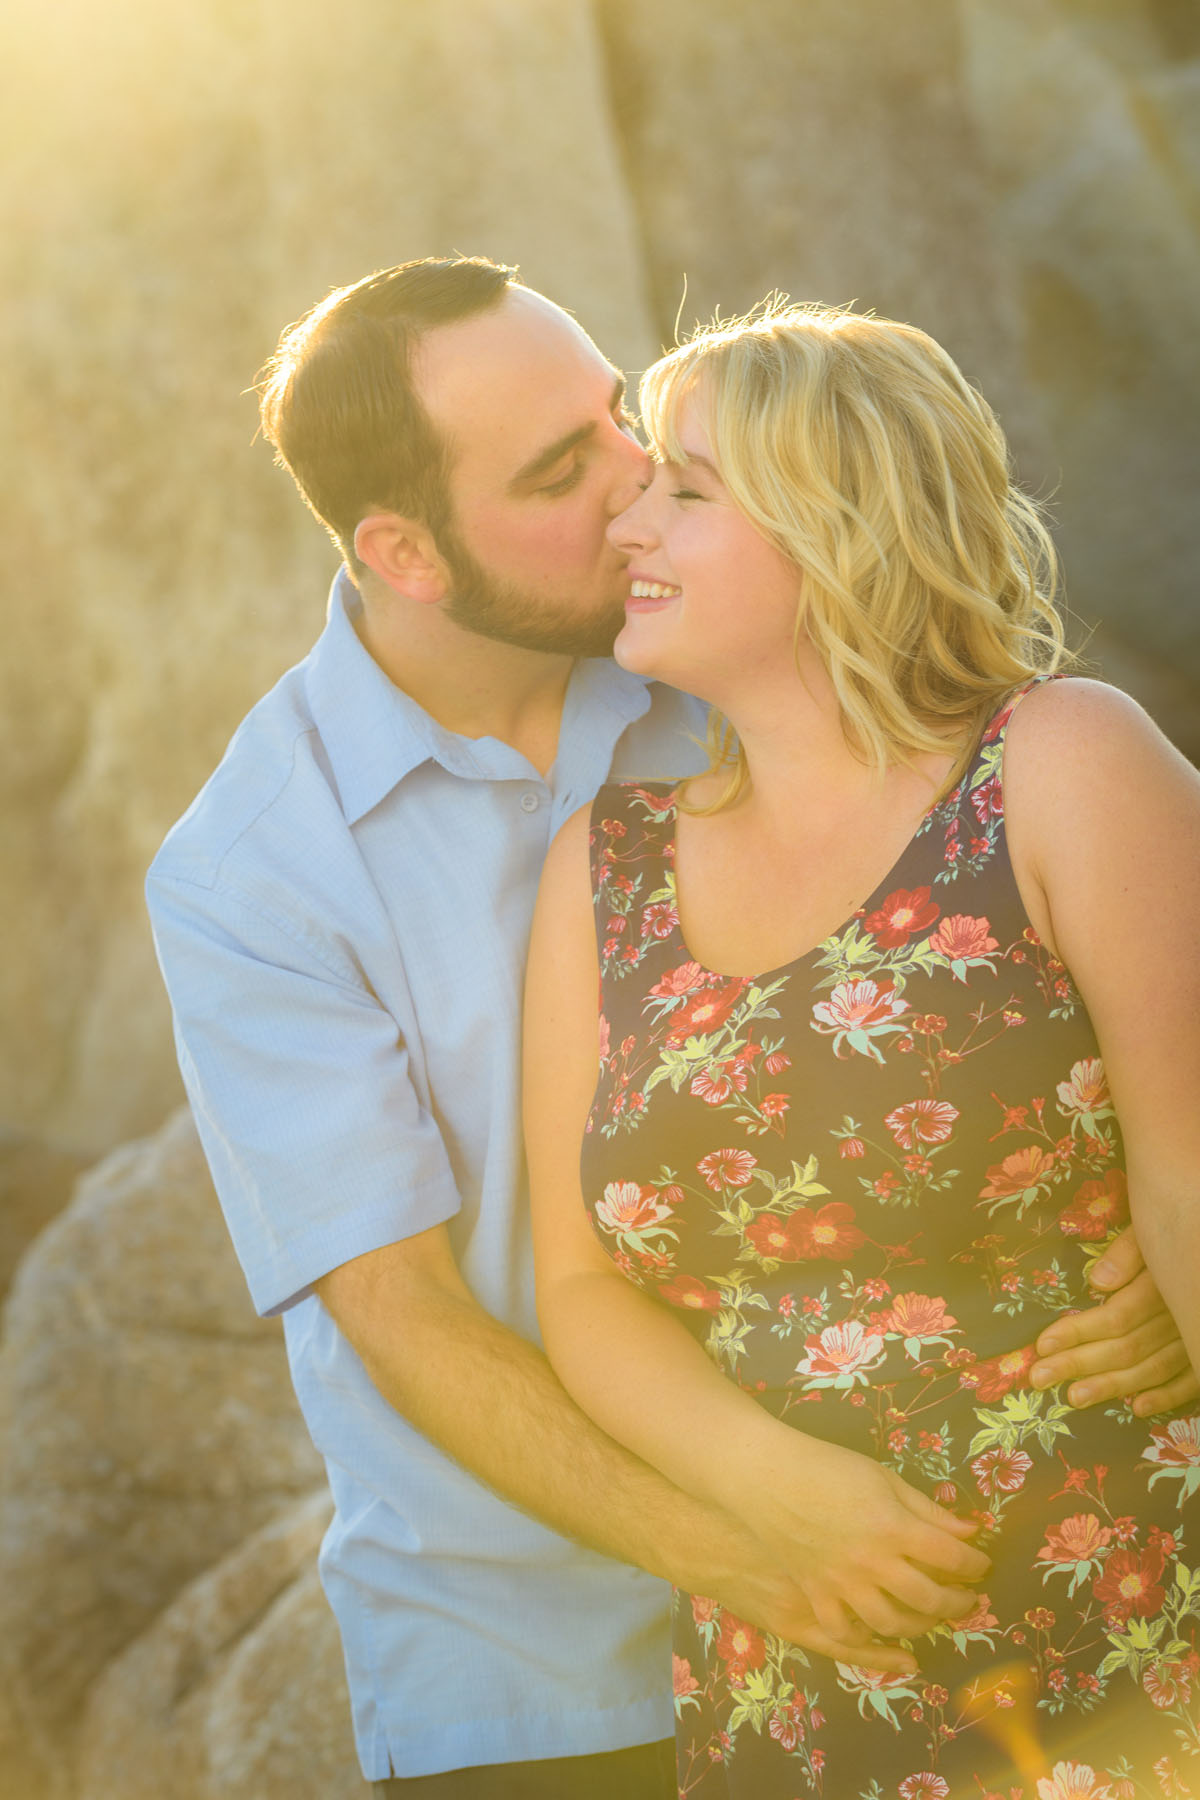 couple kissing with sun flare - Stewart's Cove - Carmel Engagement Photography - photos by Bay Area wedding photographer Chris Schmauch